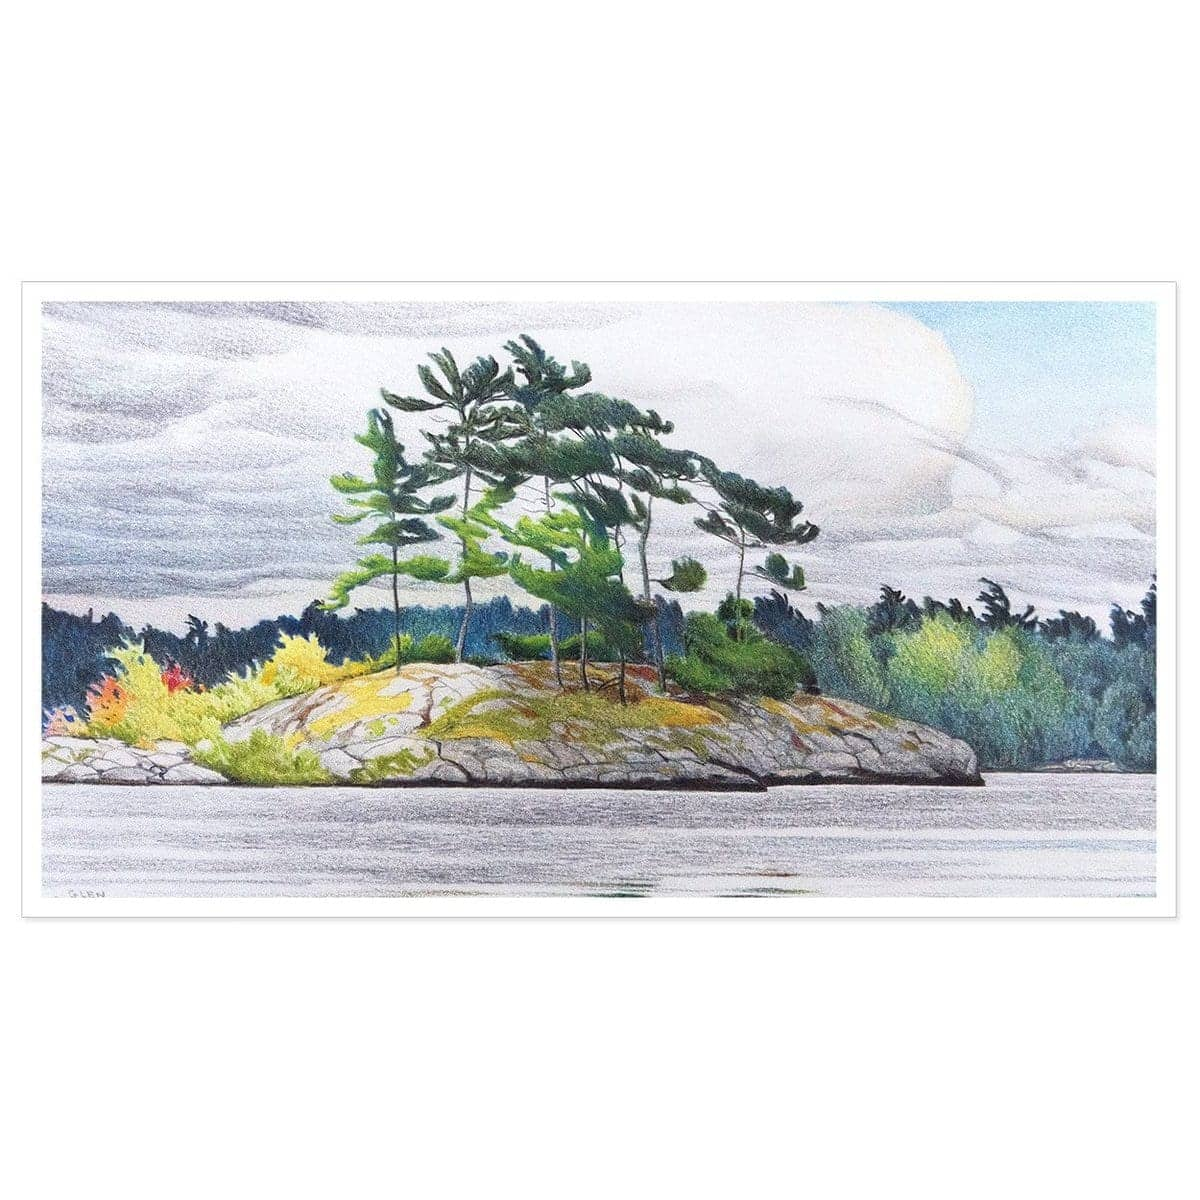 Northern Tribute - Art Print by Glen Loates from the Glen Loates Store